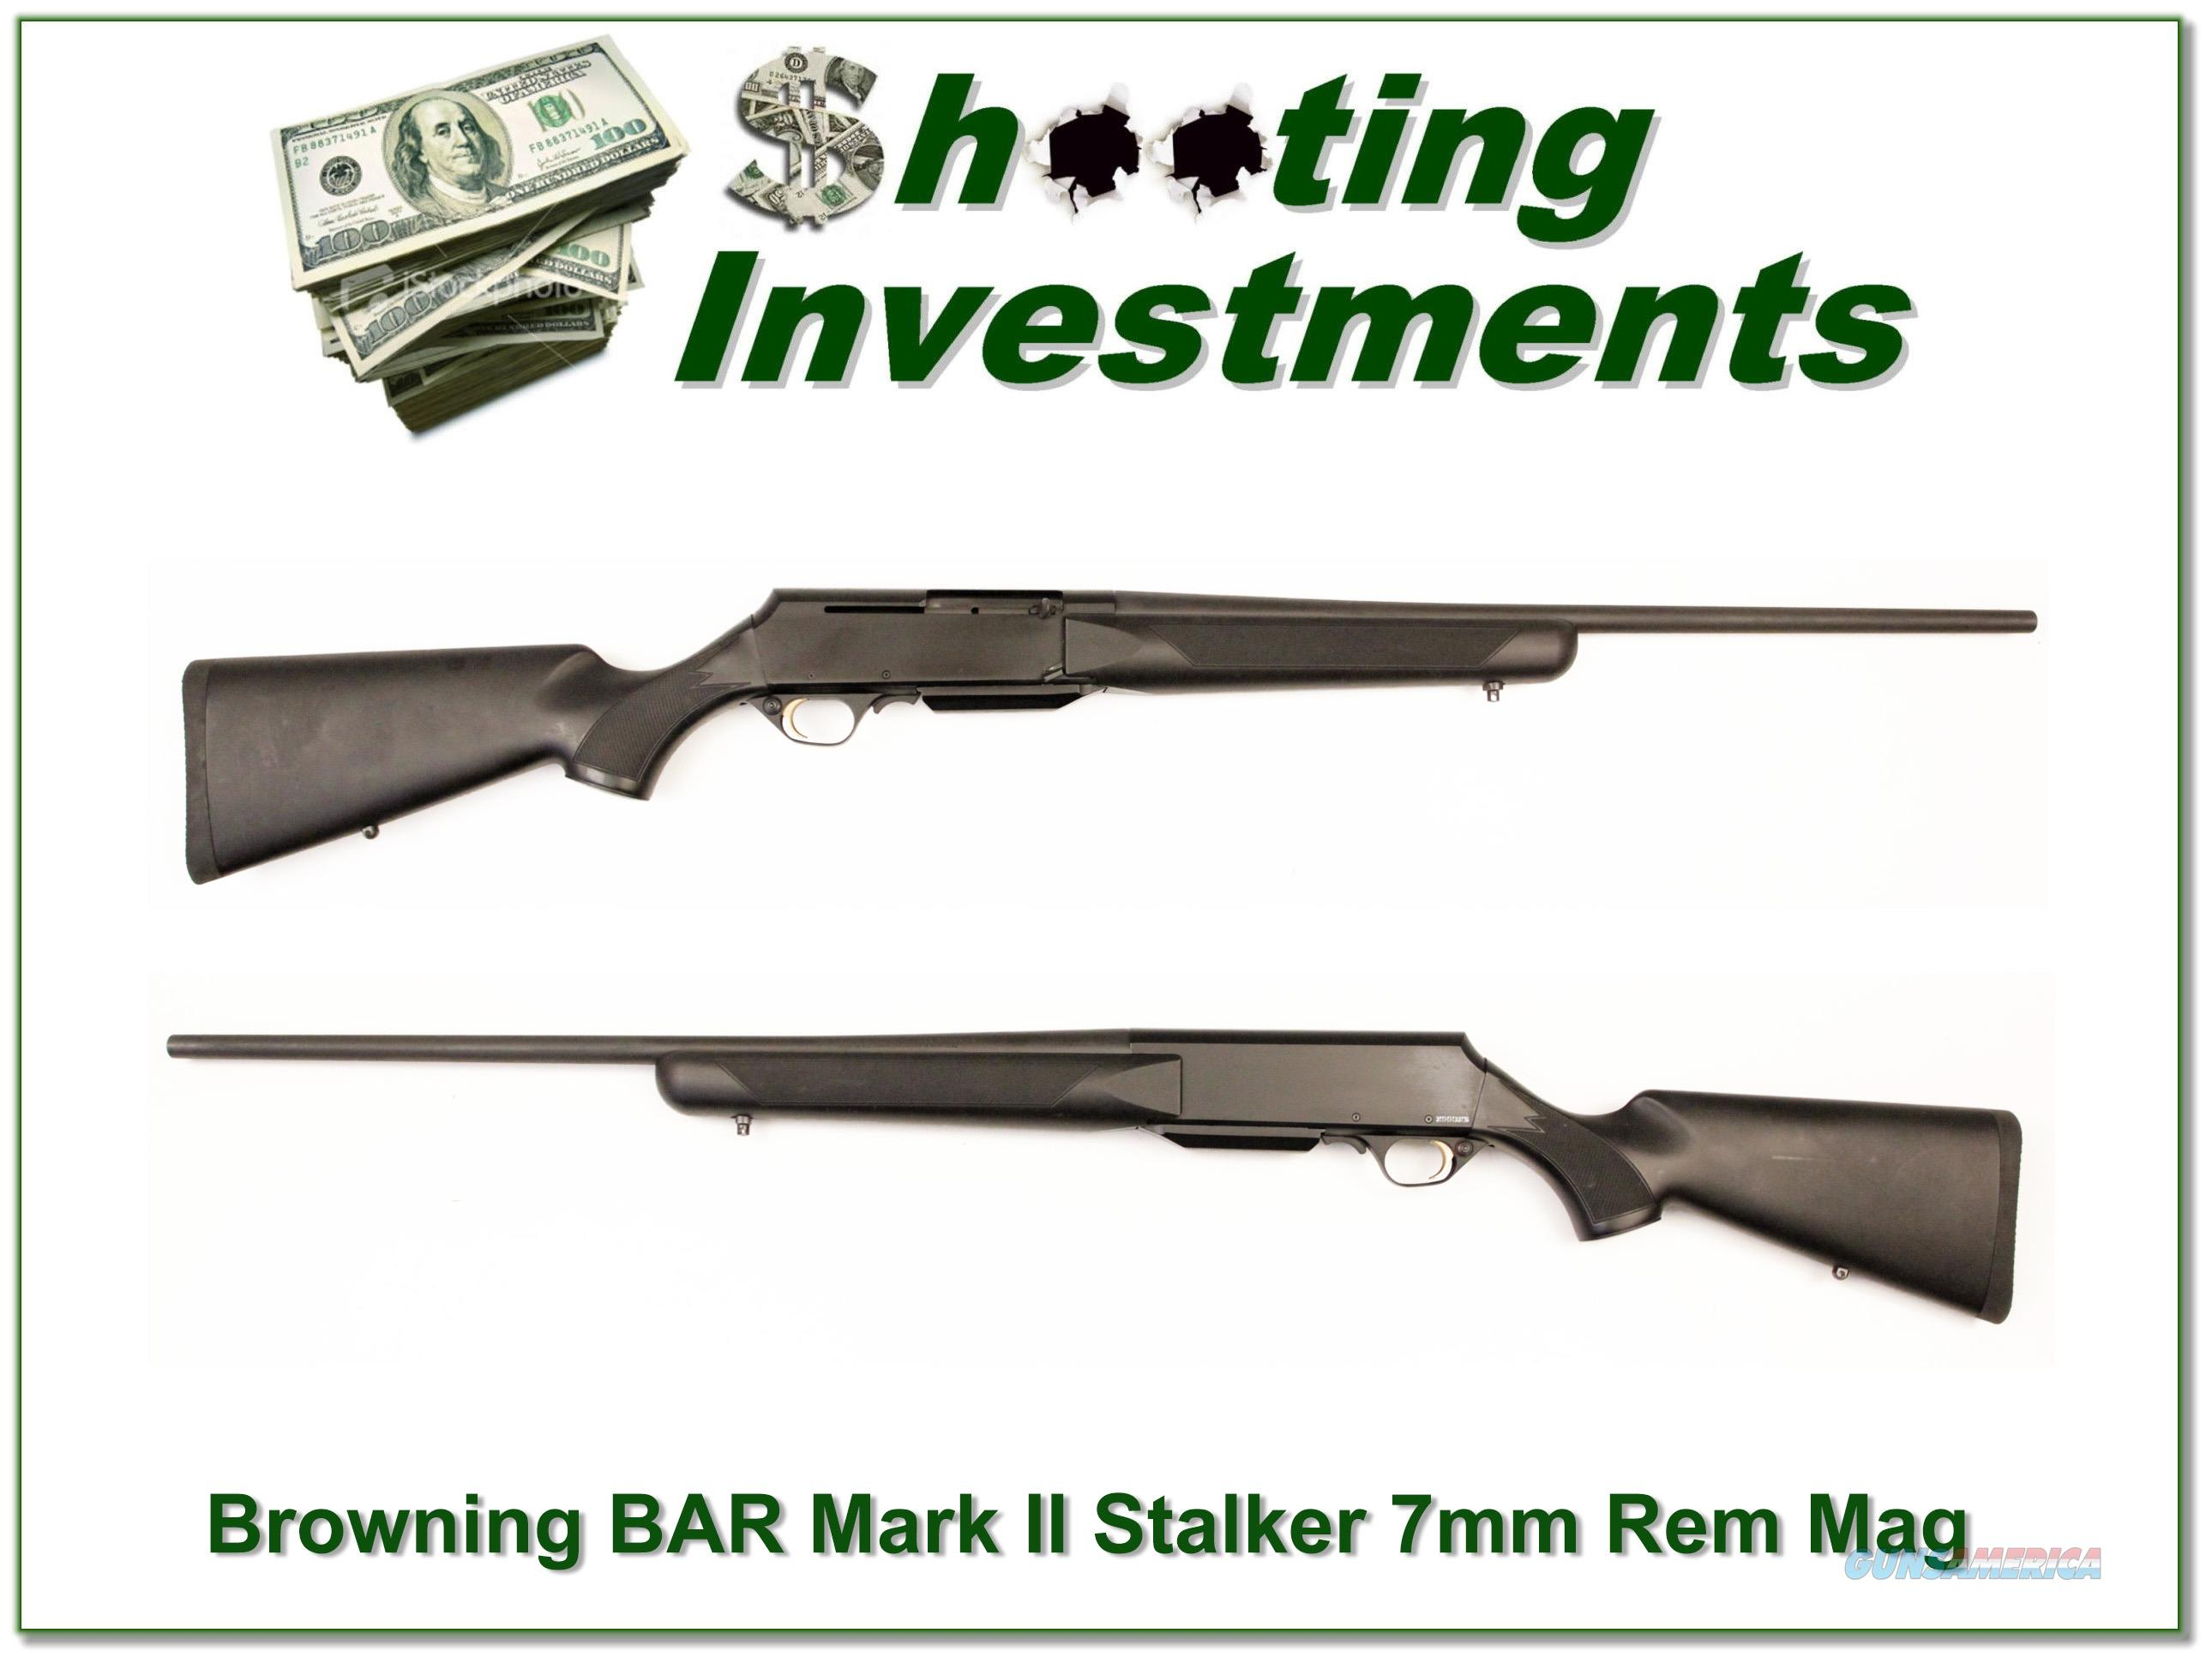 Browning BAR Mark II Stalker 7mm Rem Mag Exc Cond!  Guns > Rifles > Browning Rifles > Semi Auto > Hunting